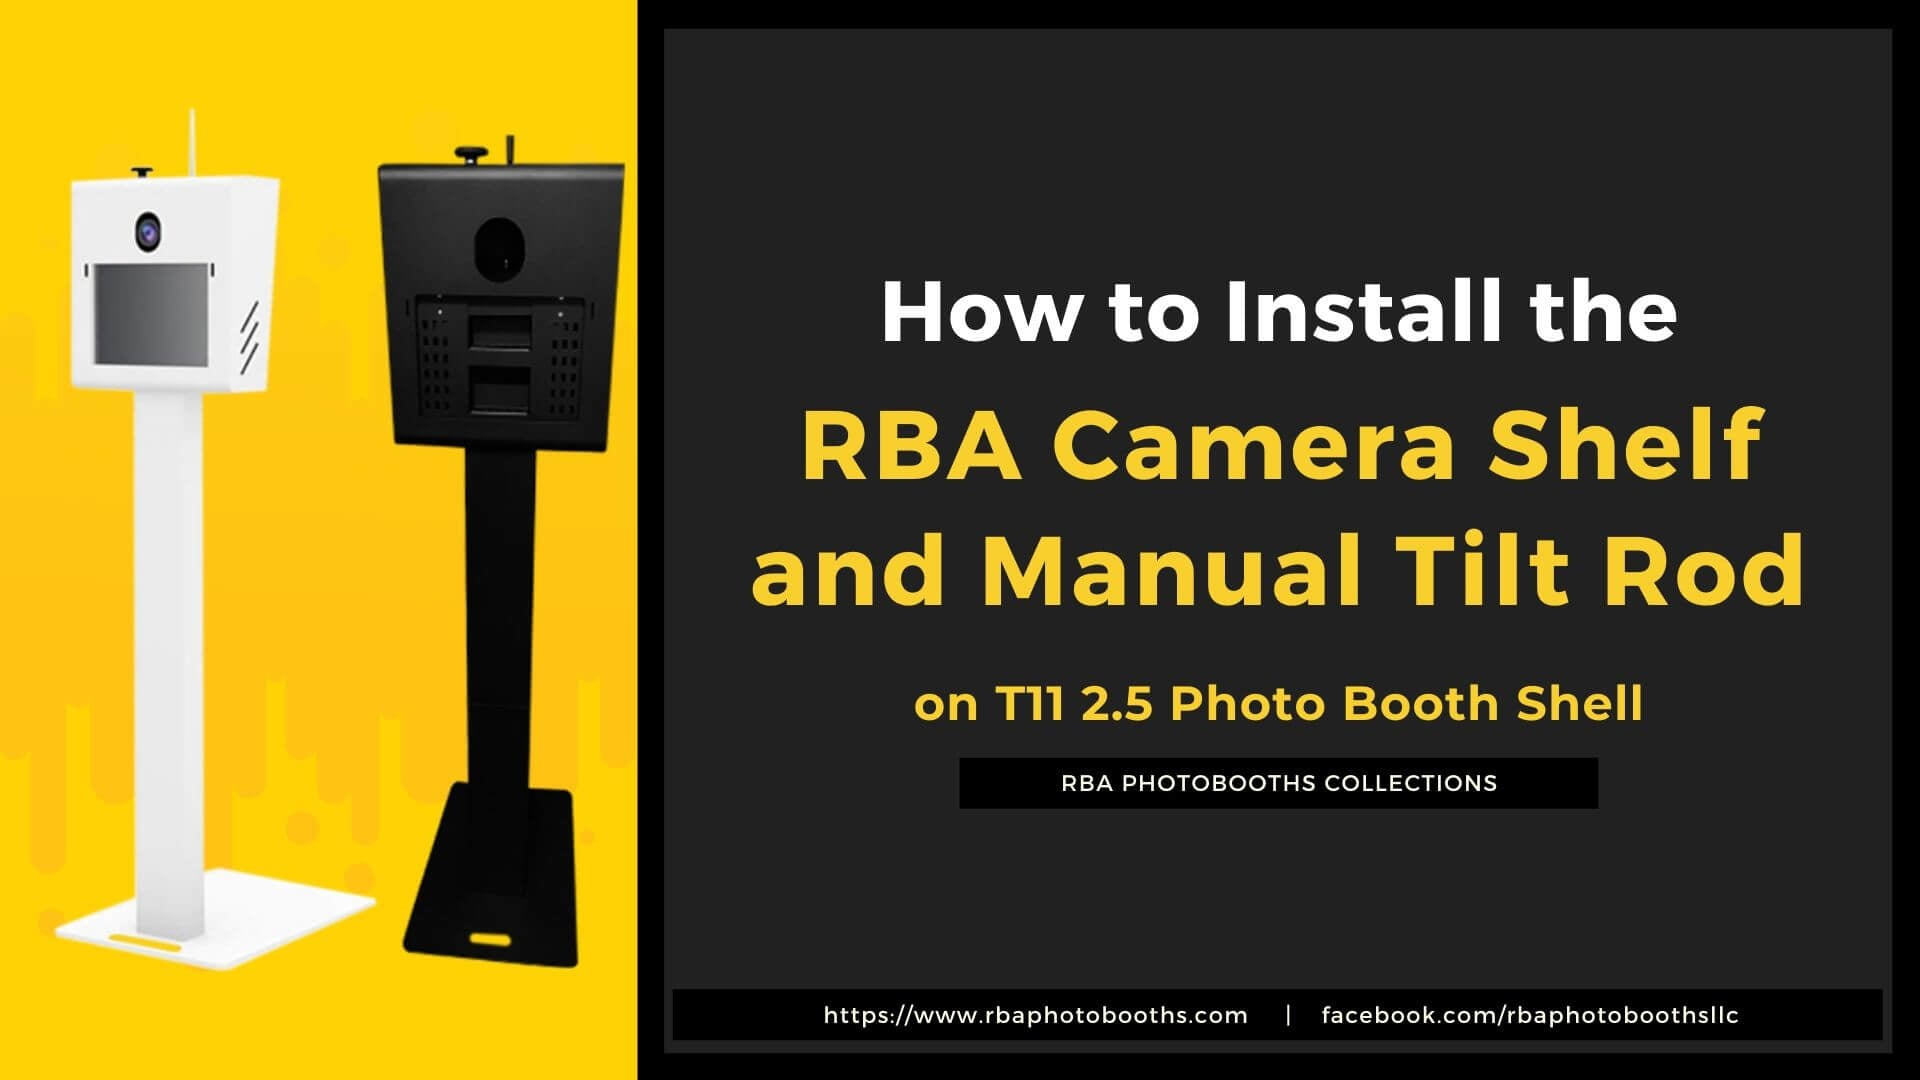 How to Install the RBA Camera Shelf and Manual Tilt Rod on RBA T11 2.5 Photo Booth Shell Enclosure